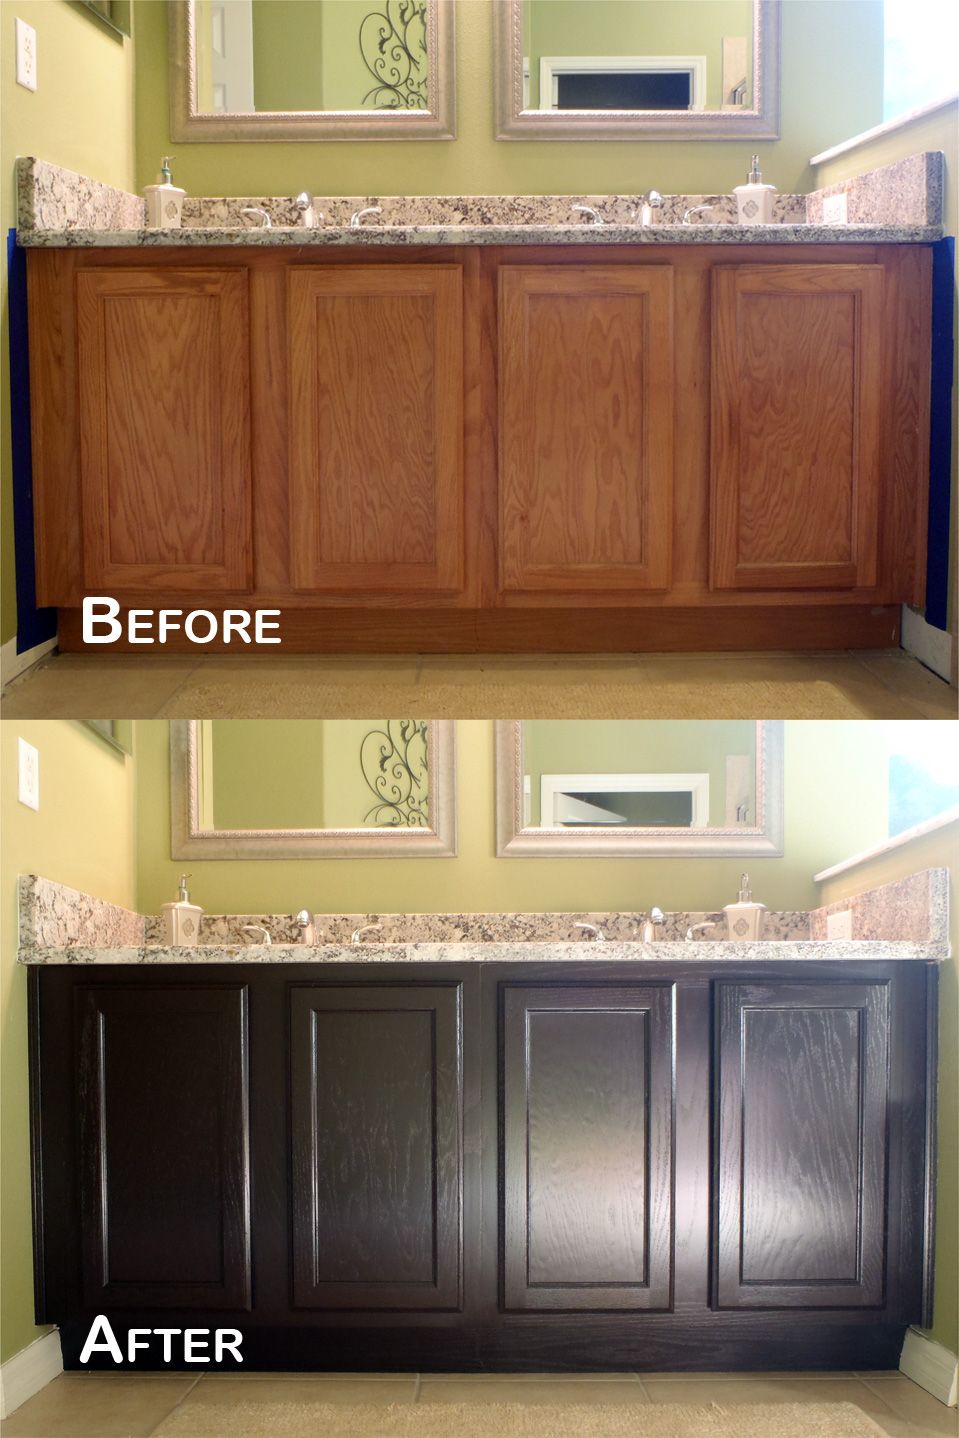 Java Gel Stain Amazing Transformation Stained Kitchen Cabinets Staining Cabinets Kitchen Cabinets Makeover